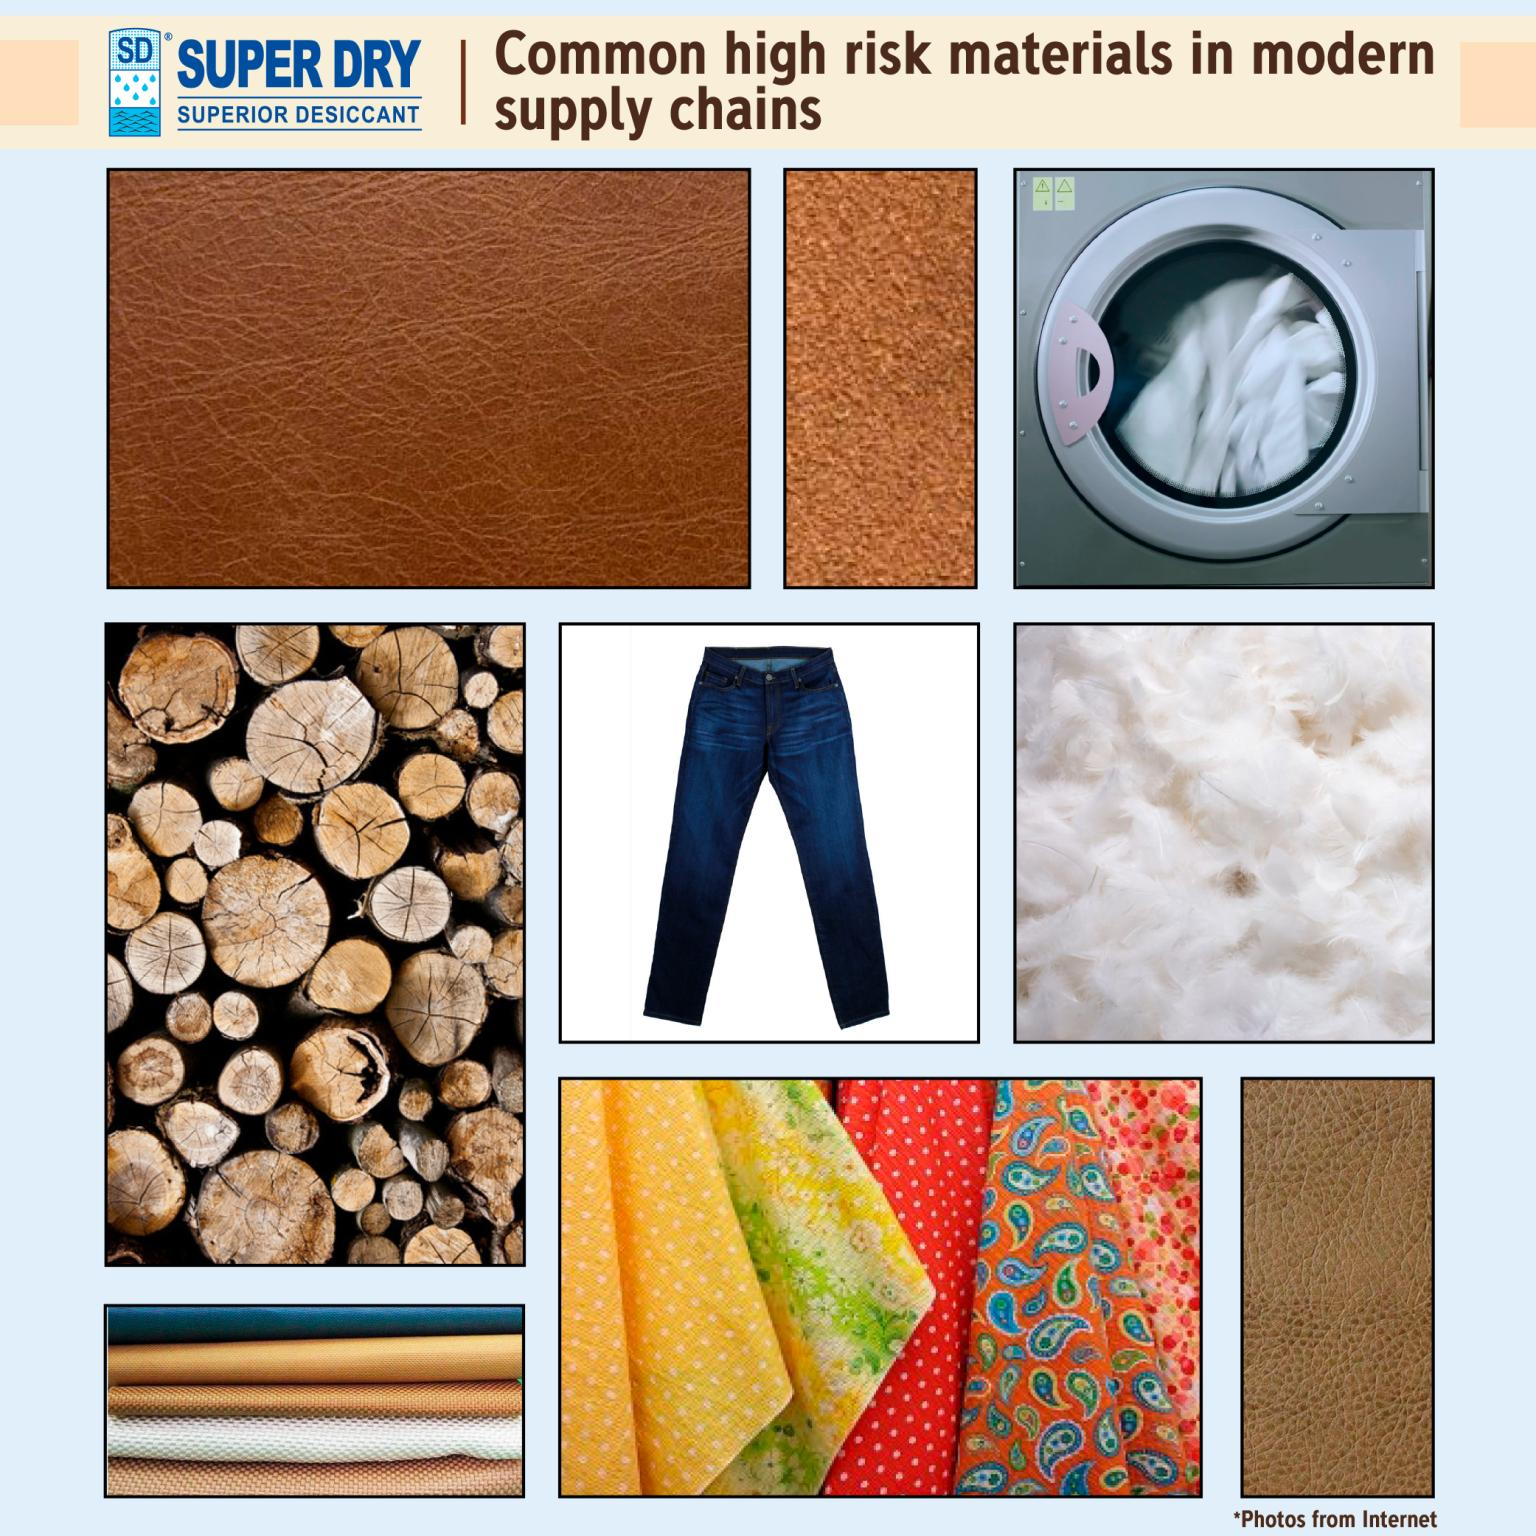 #Common high risk materials in modern supply chains